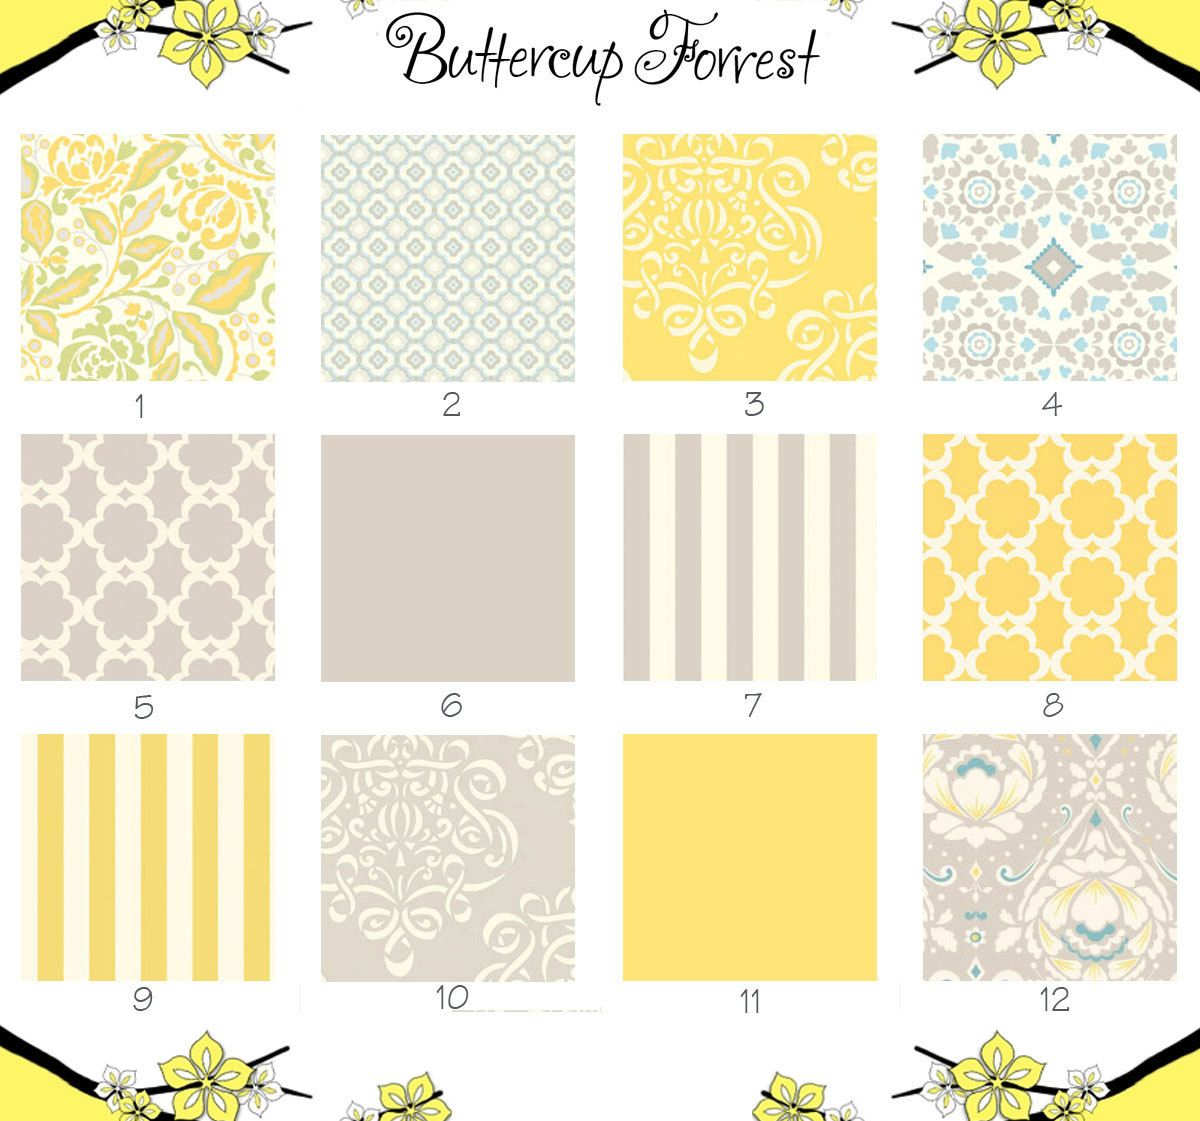 Crib Sheets 40 Would Want In Neutral Or Baby S Gender Color Master Bedroom Colors Yellow Home Decor Baby Changing Pad Cover